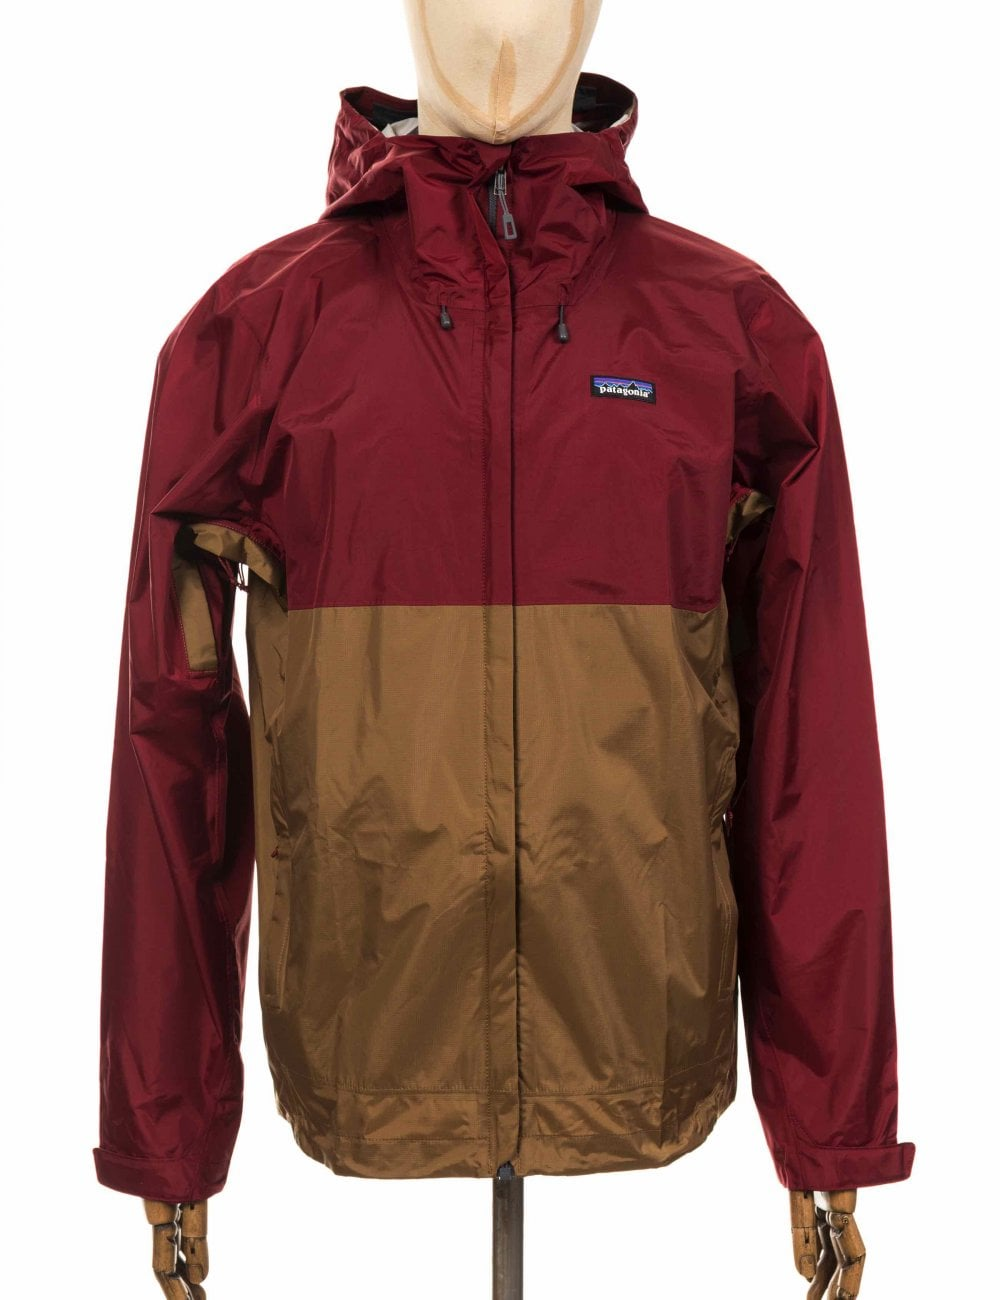 factory authentic 2019 discount sale Torrentshell Jacket - Oxide Red